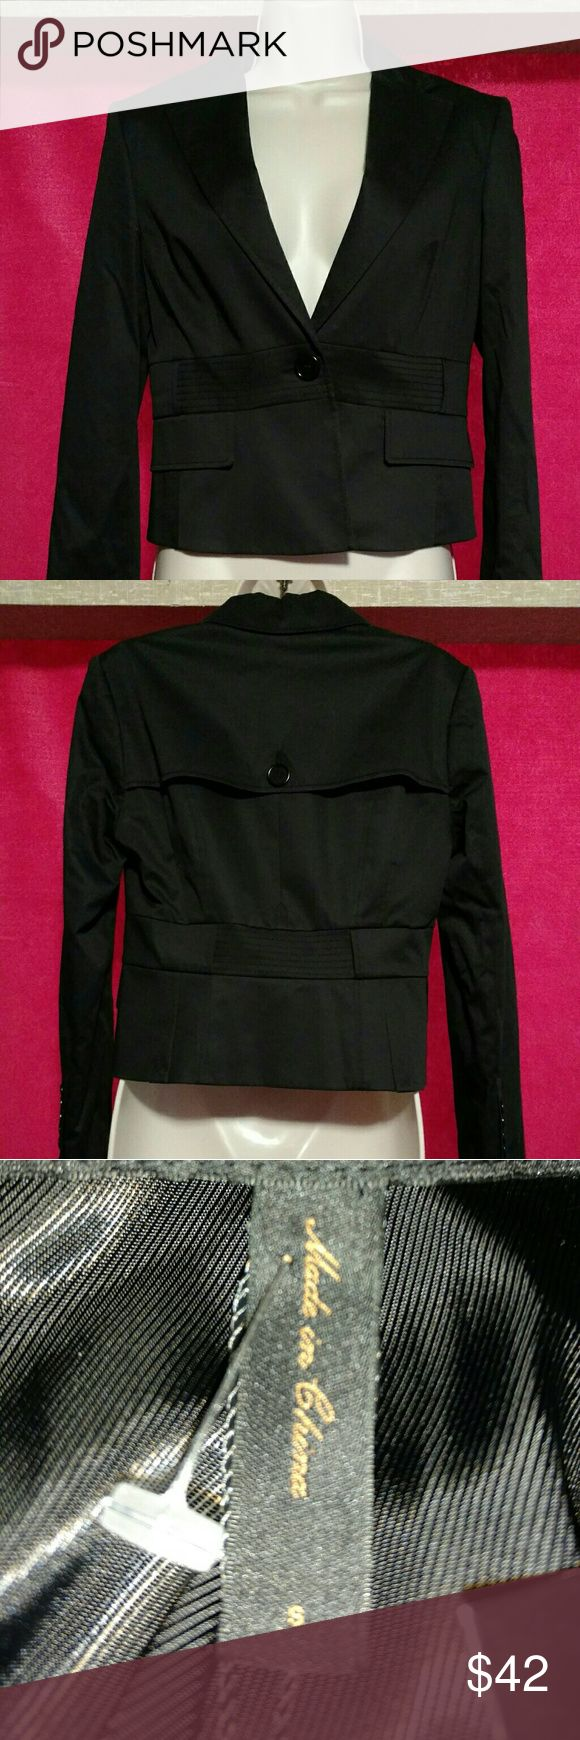 New w tags BCBG MaxAzria Black cotton blazer from a favorite label! Size small. Brand new! 3% spandex for unwrinkled comfy fit. BCBGMaxAzria Jackets & Coats Blazers